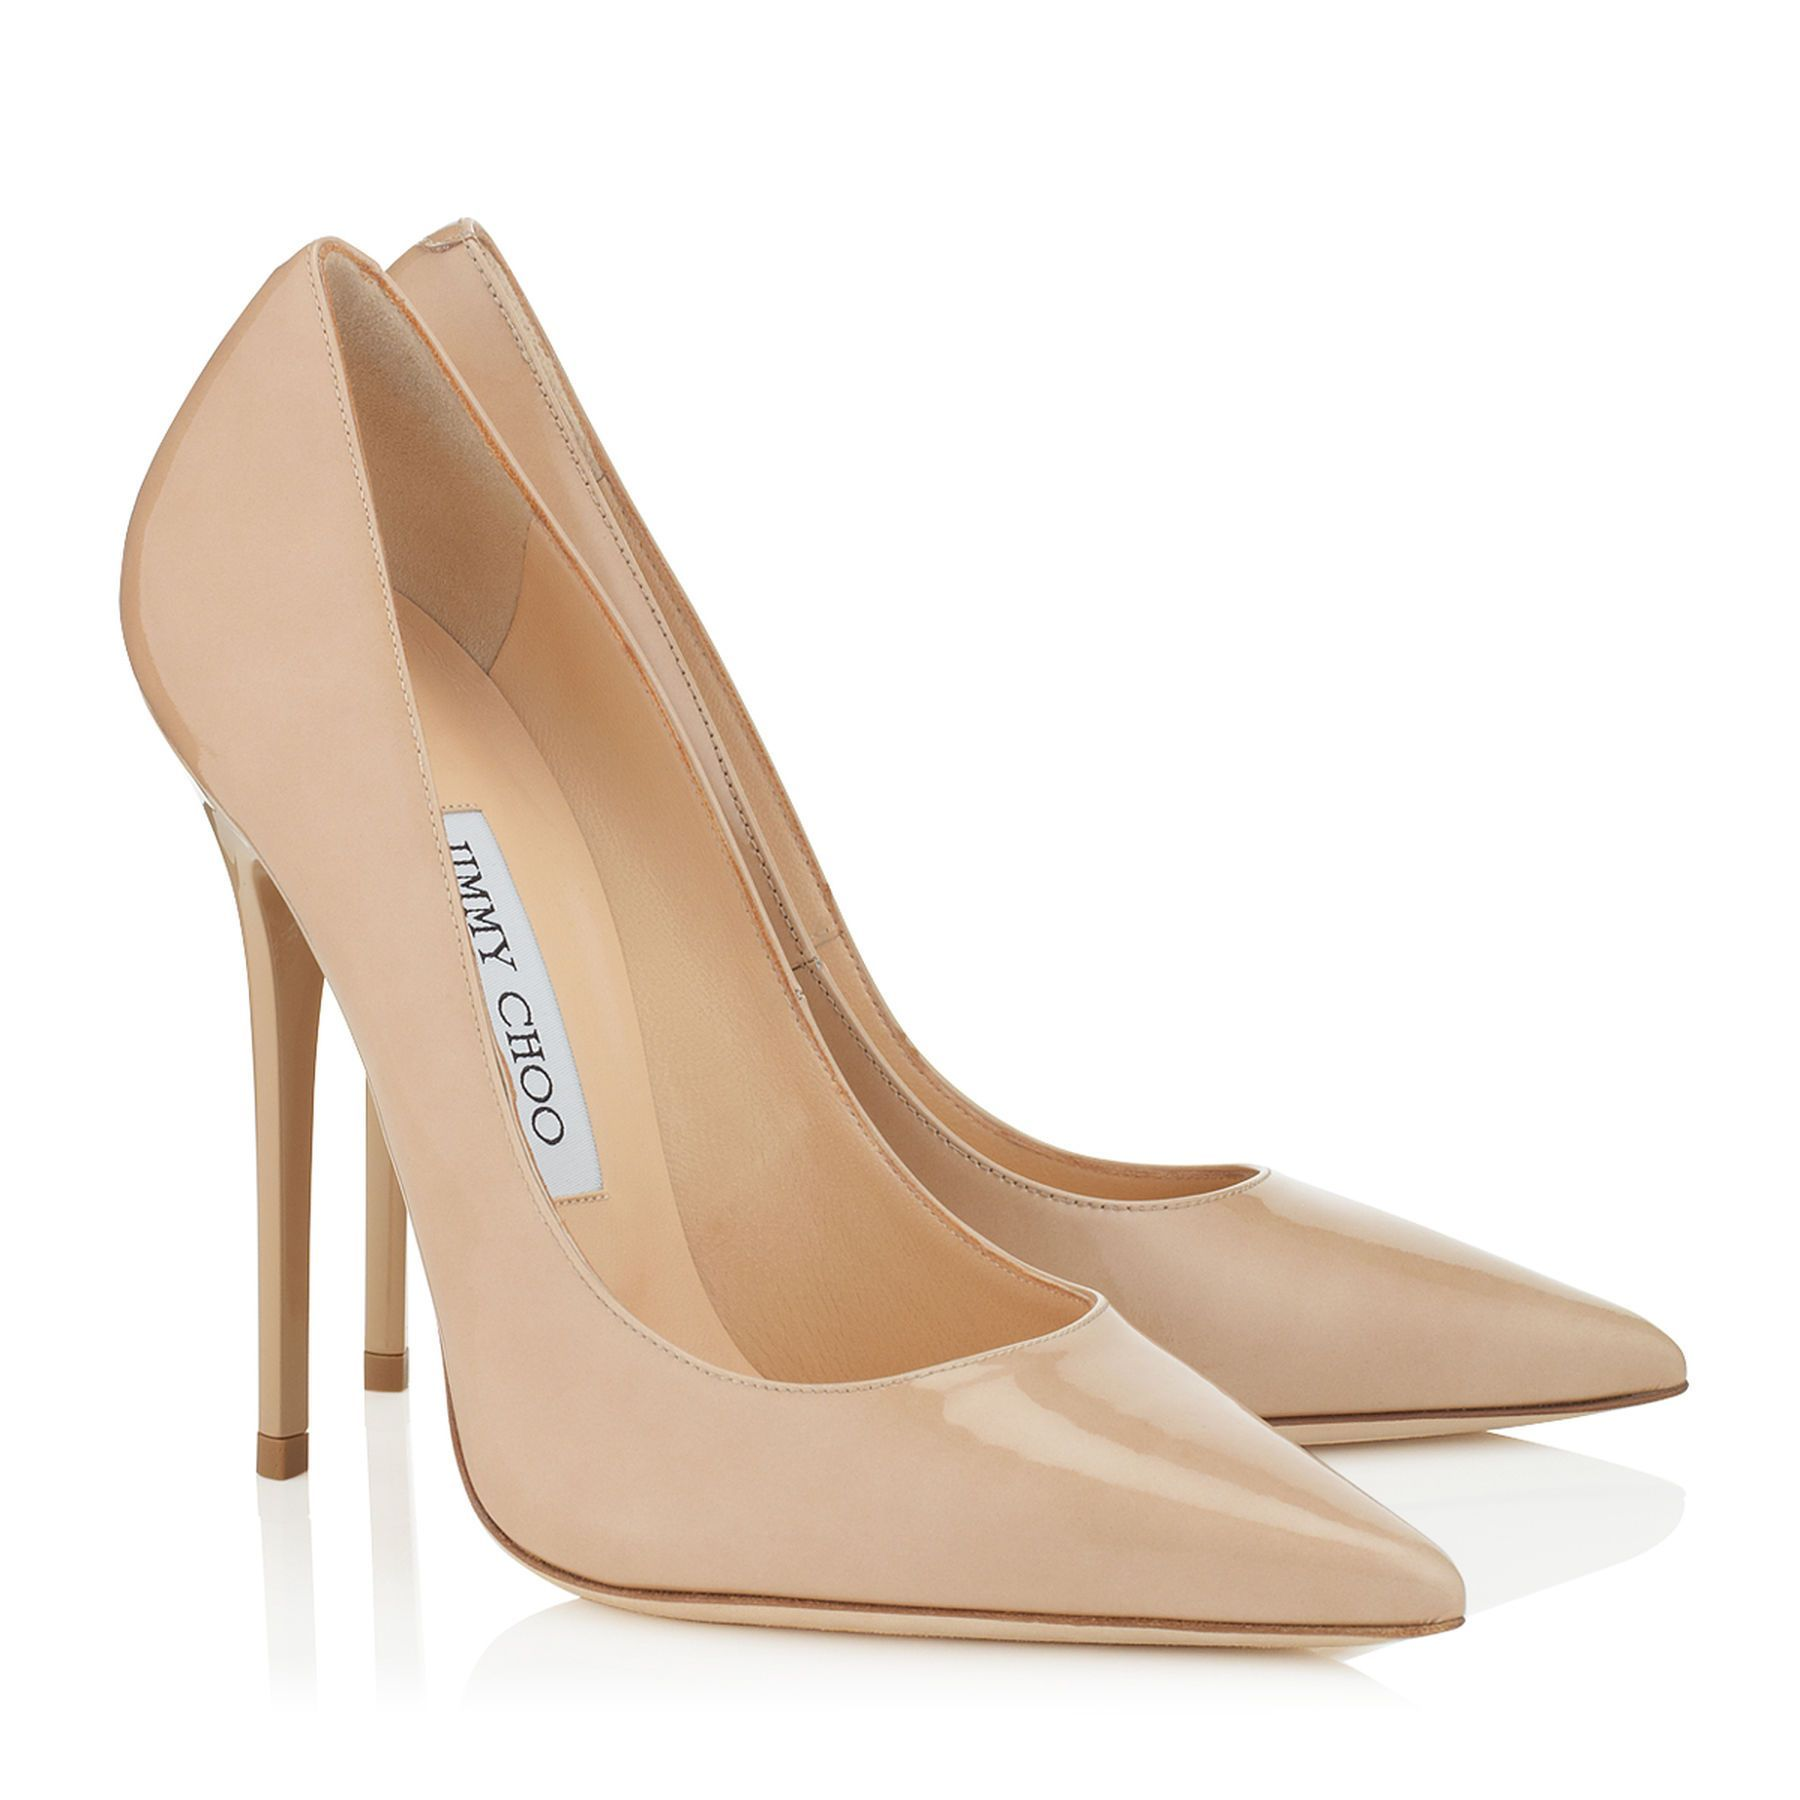 3e6dcd23b62b0 ANOUK  JimmyChooHeels. Find this Pin and more on Jimmy Choo Heels by ...